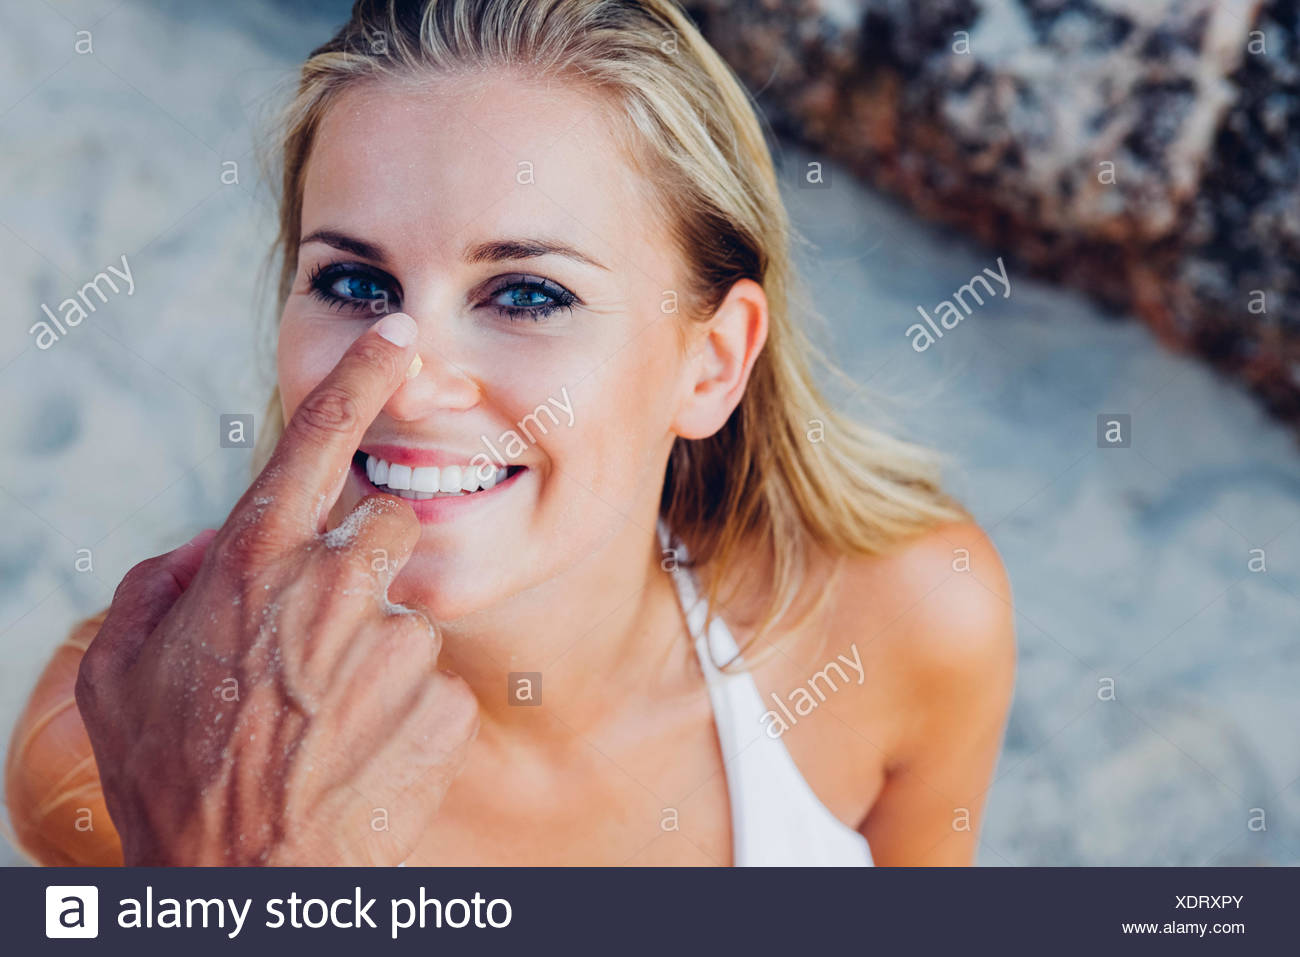 Man's hands applying sunscreen lotion on woman's nose and face at the beach - Stock Image